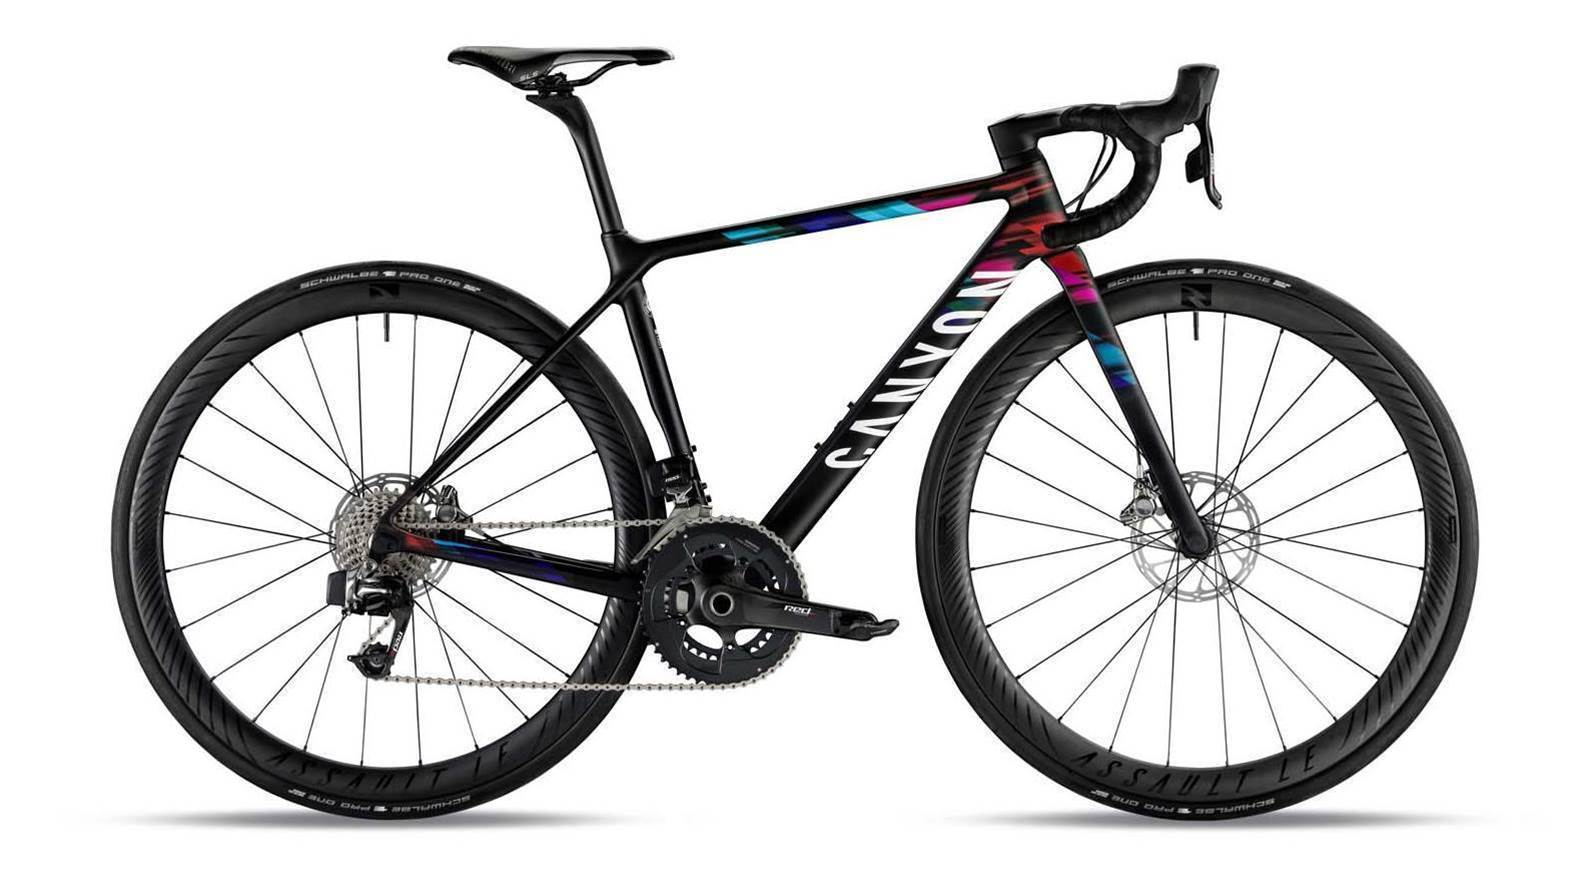 FIRST LOOK: Canyon's new women's road bike range